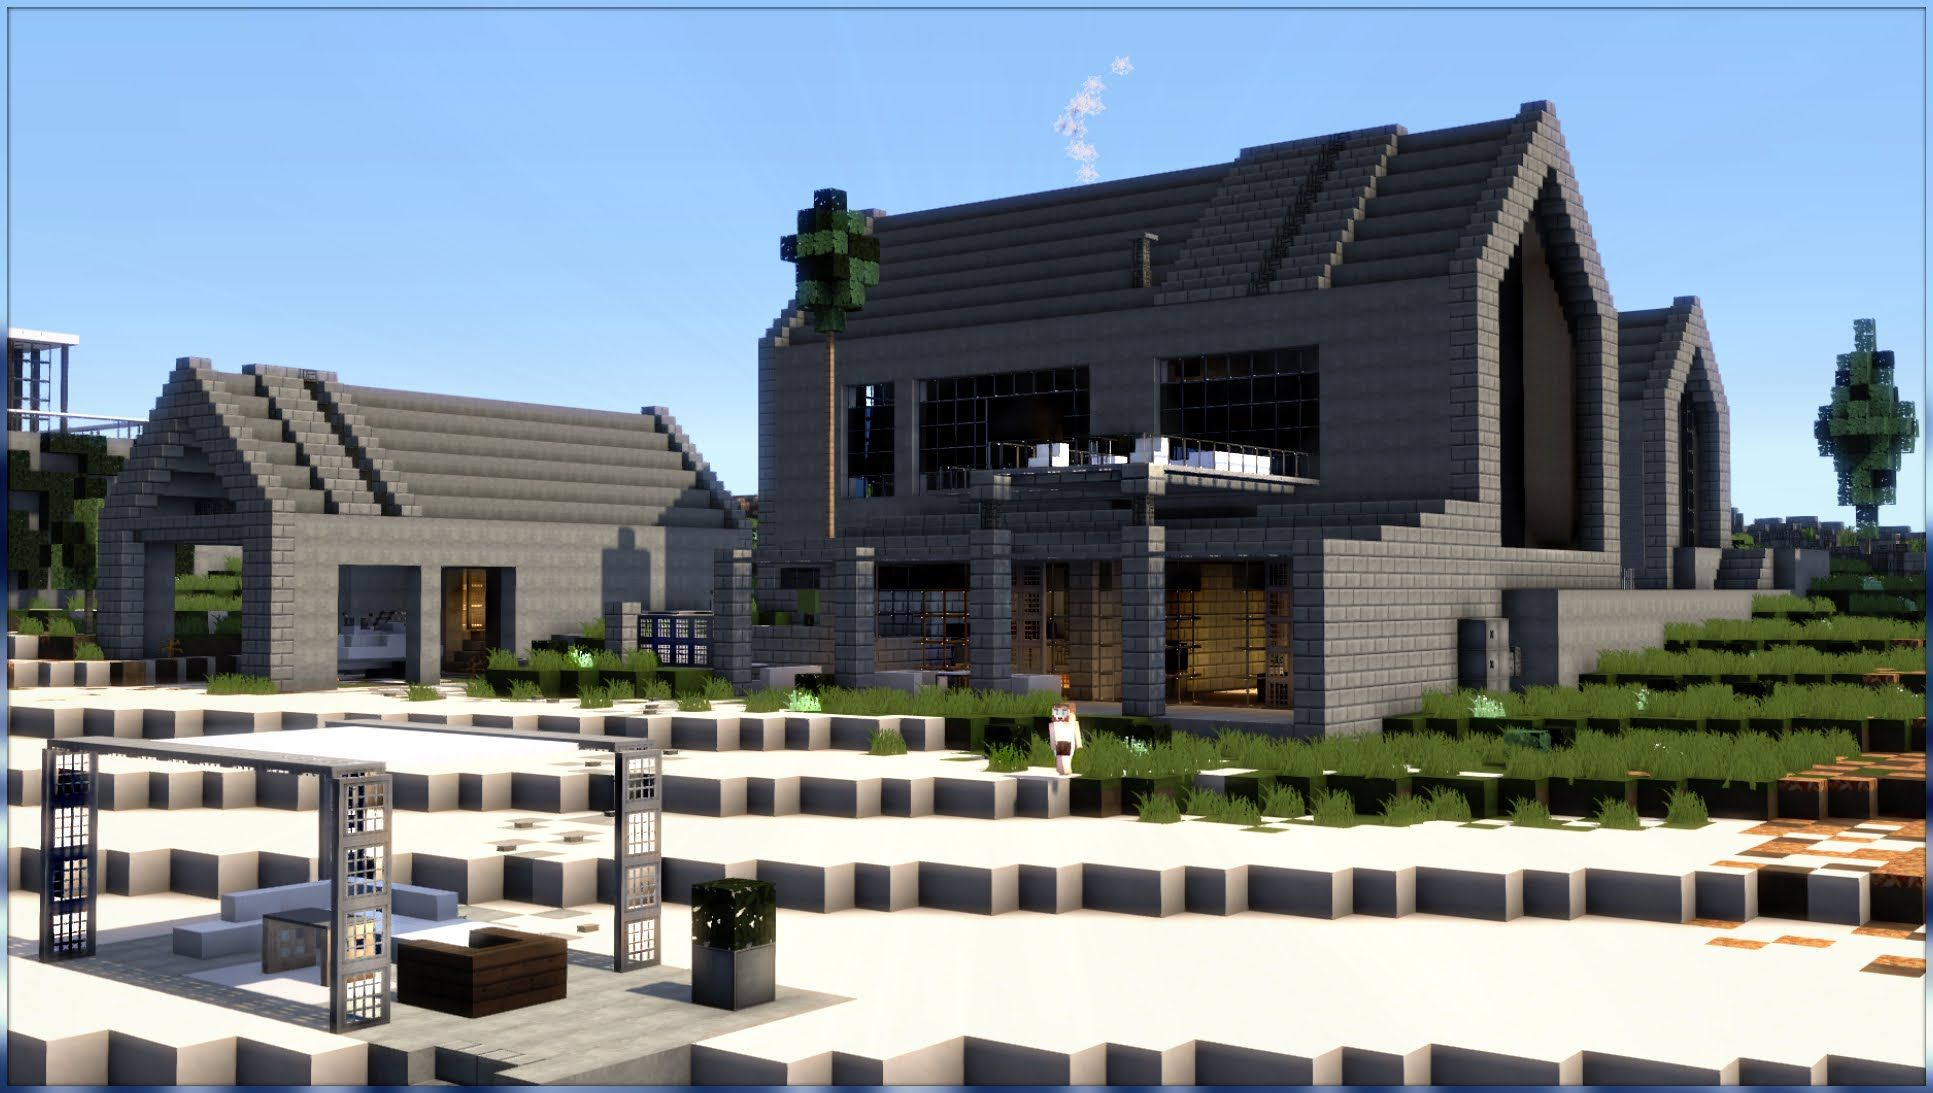 Modern Architecture House Minecraft minecraft: modern barn house conversion #4 | minecraft things